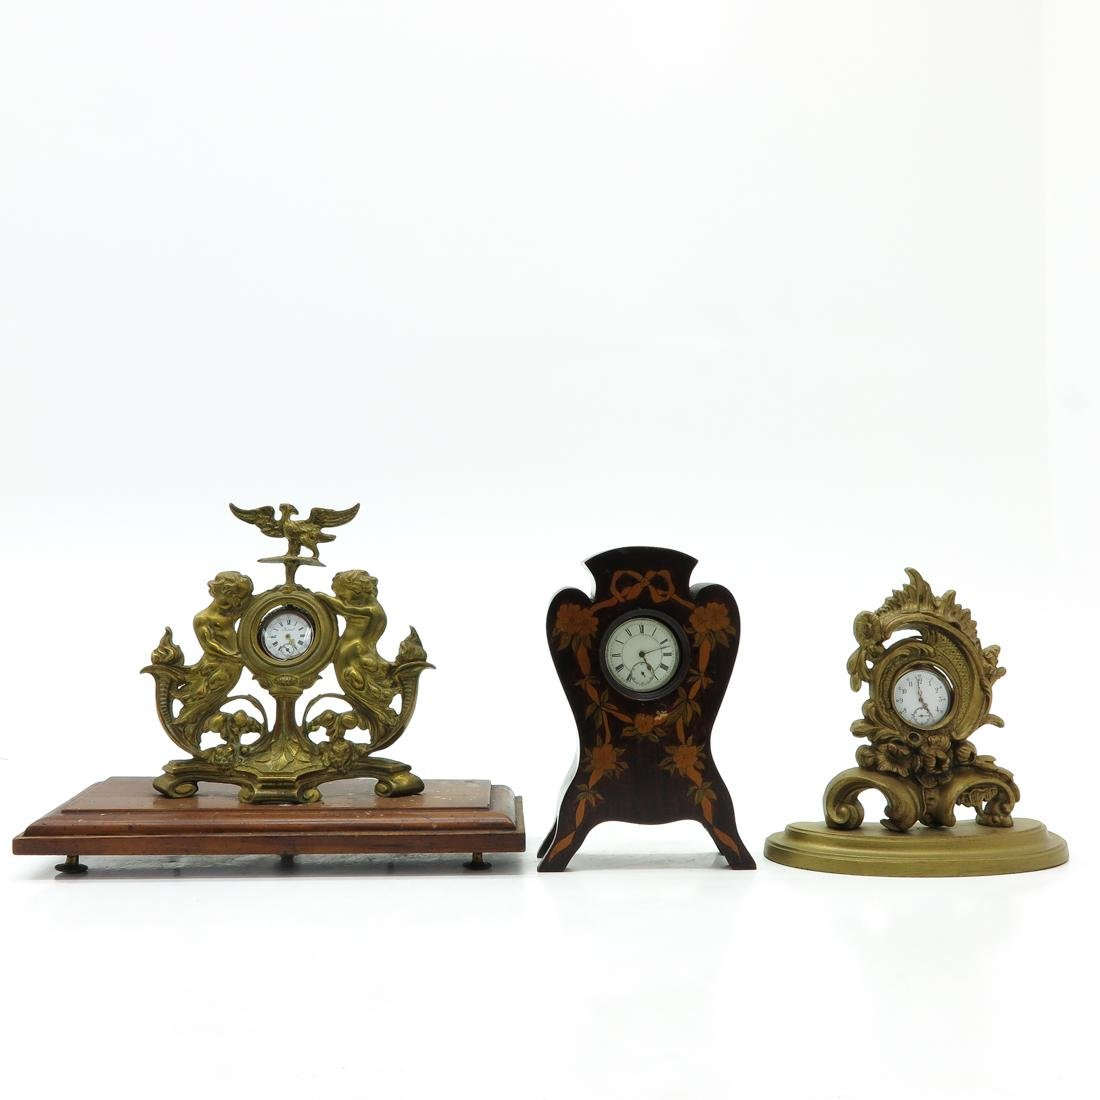 Lot of 3 Pocket Watches with Figural Holders